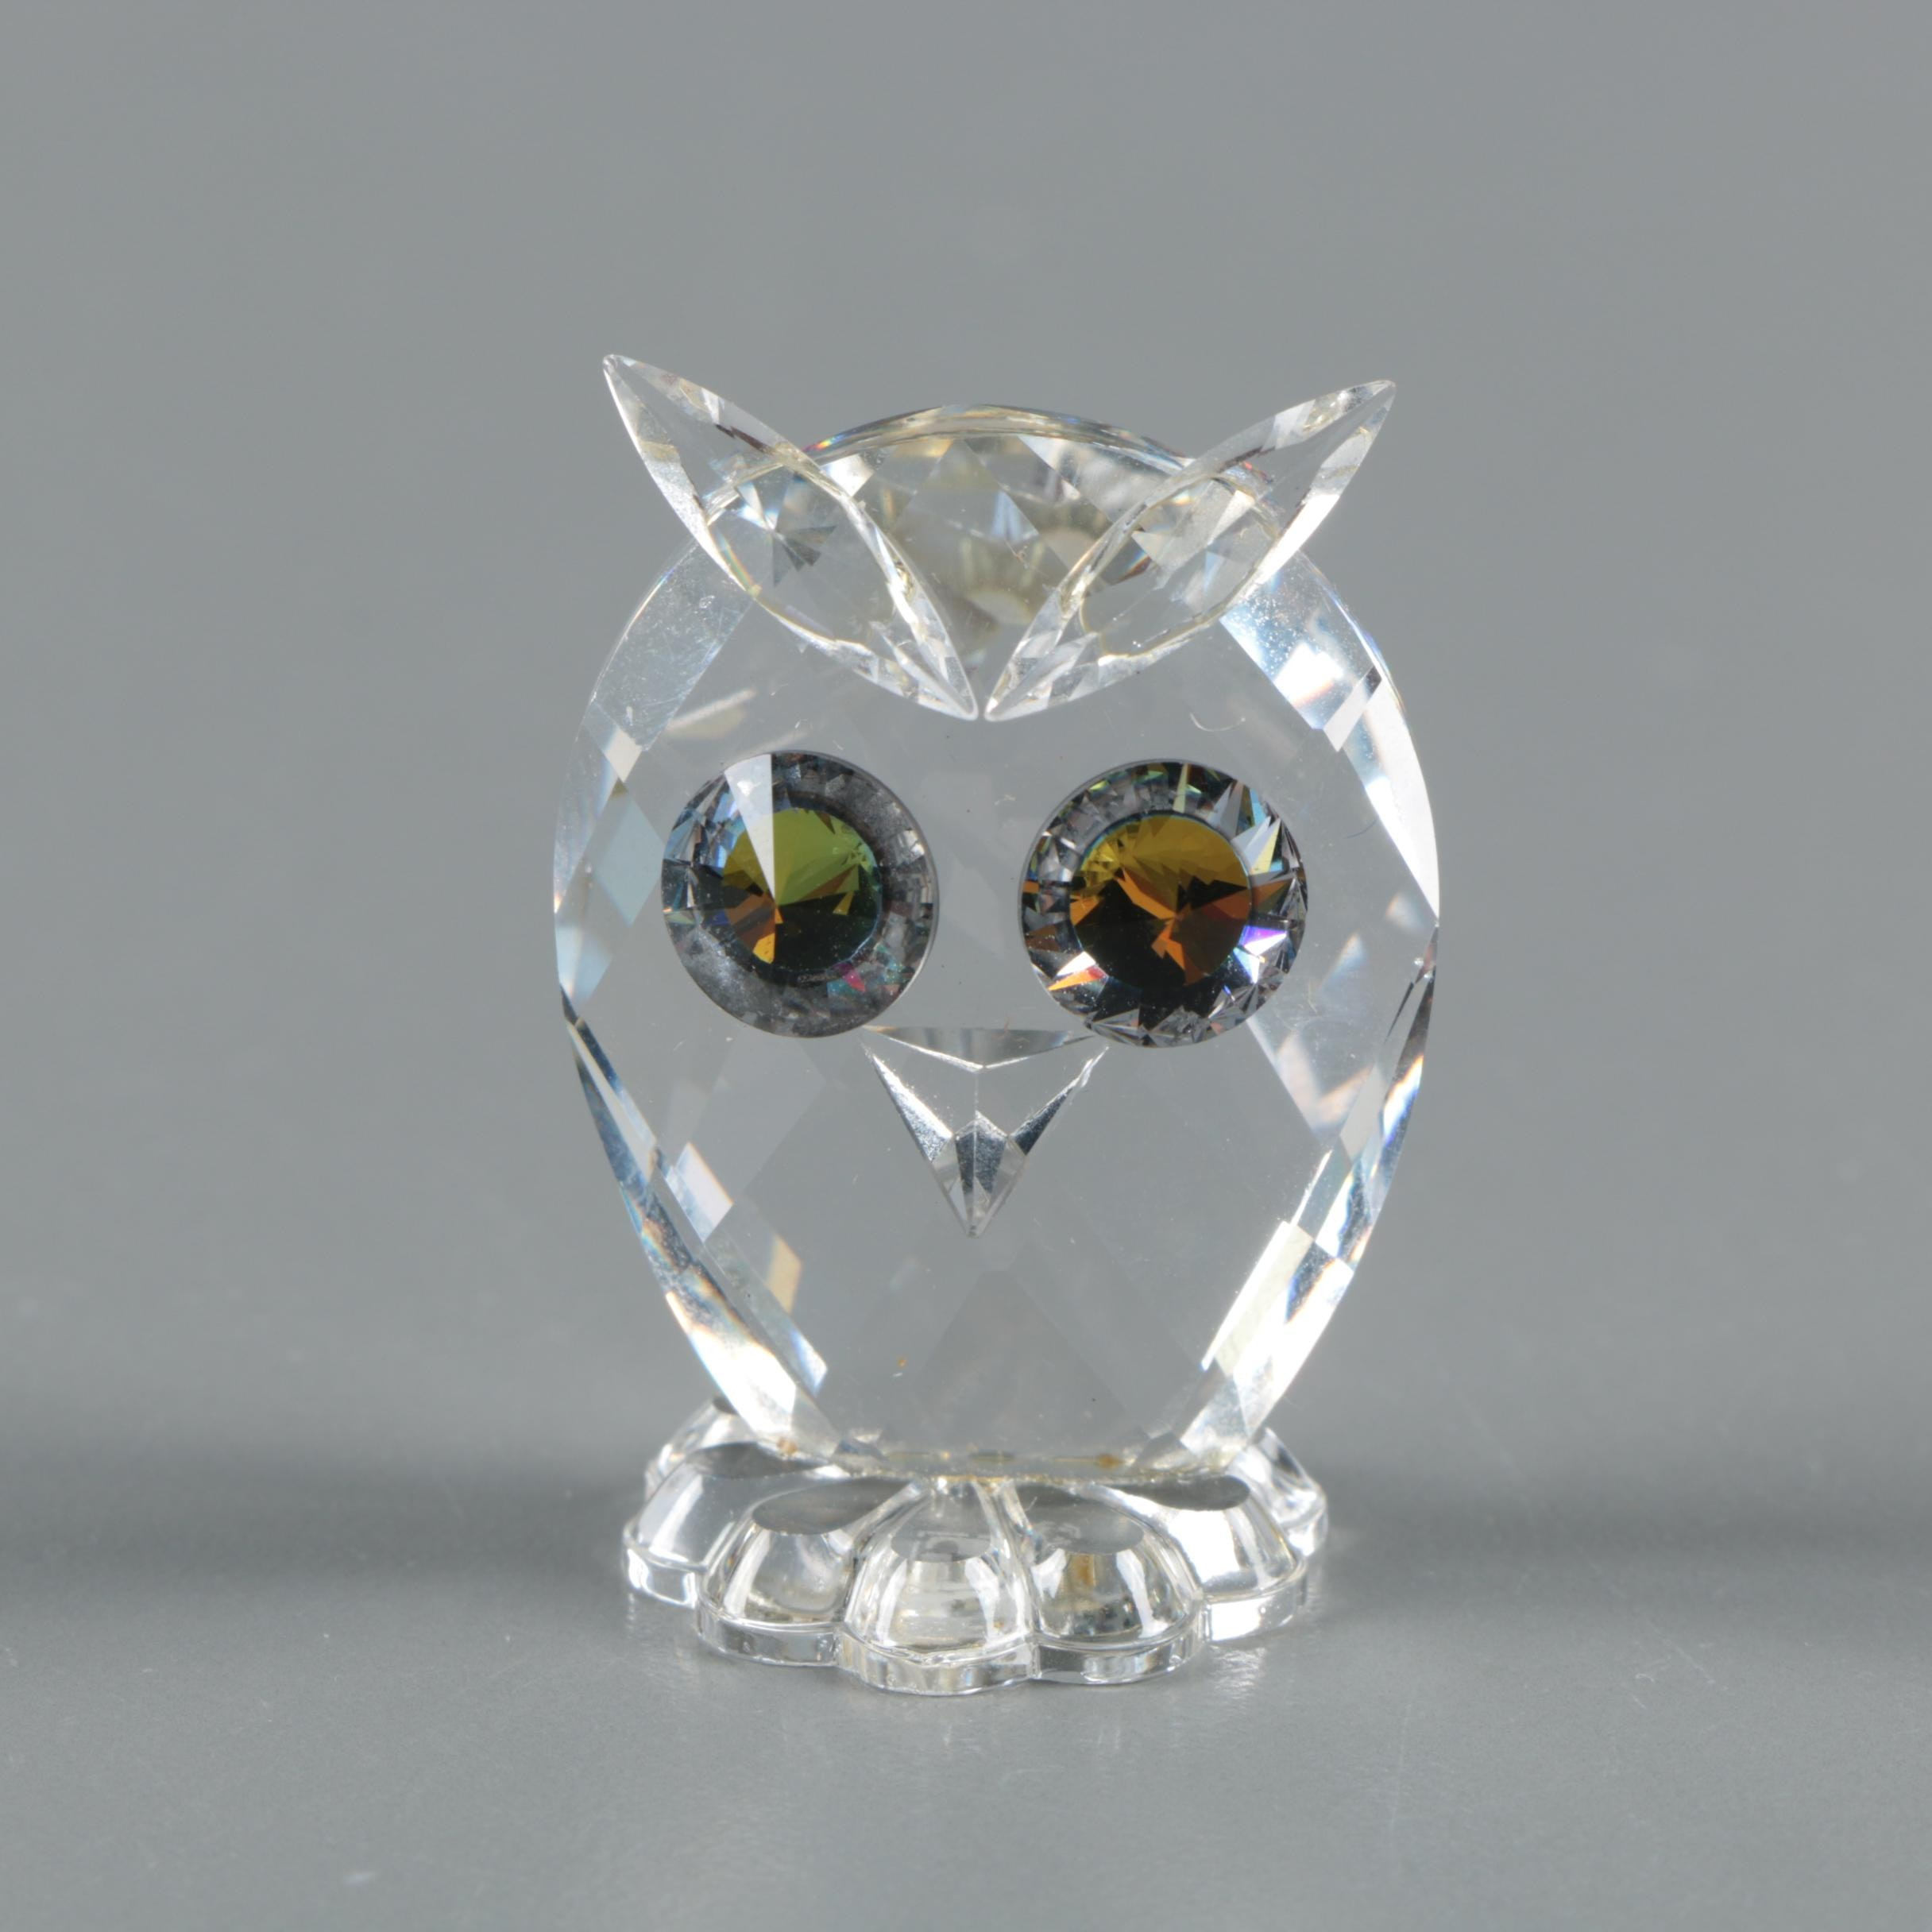 Retired Swarovski Crystal Owl Figurine Designed by Max Schreck